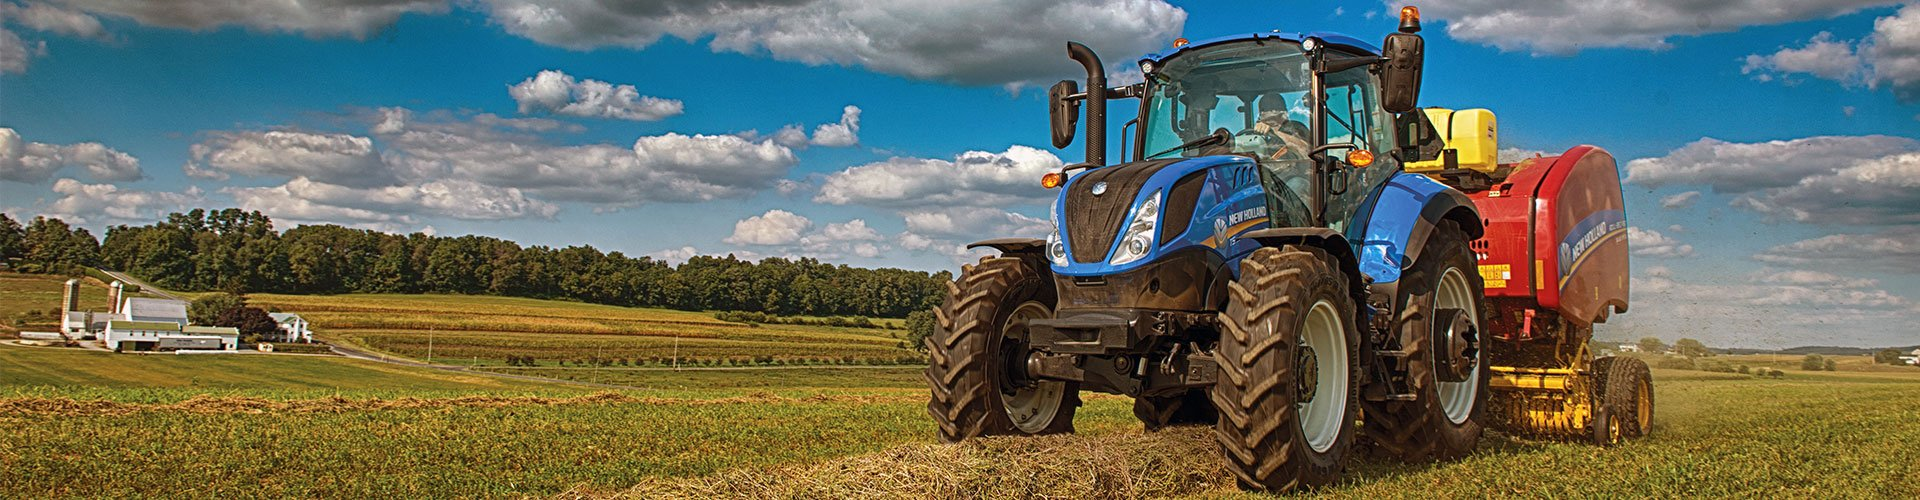 New Holland Tractor/Baler